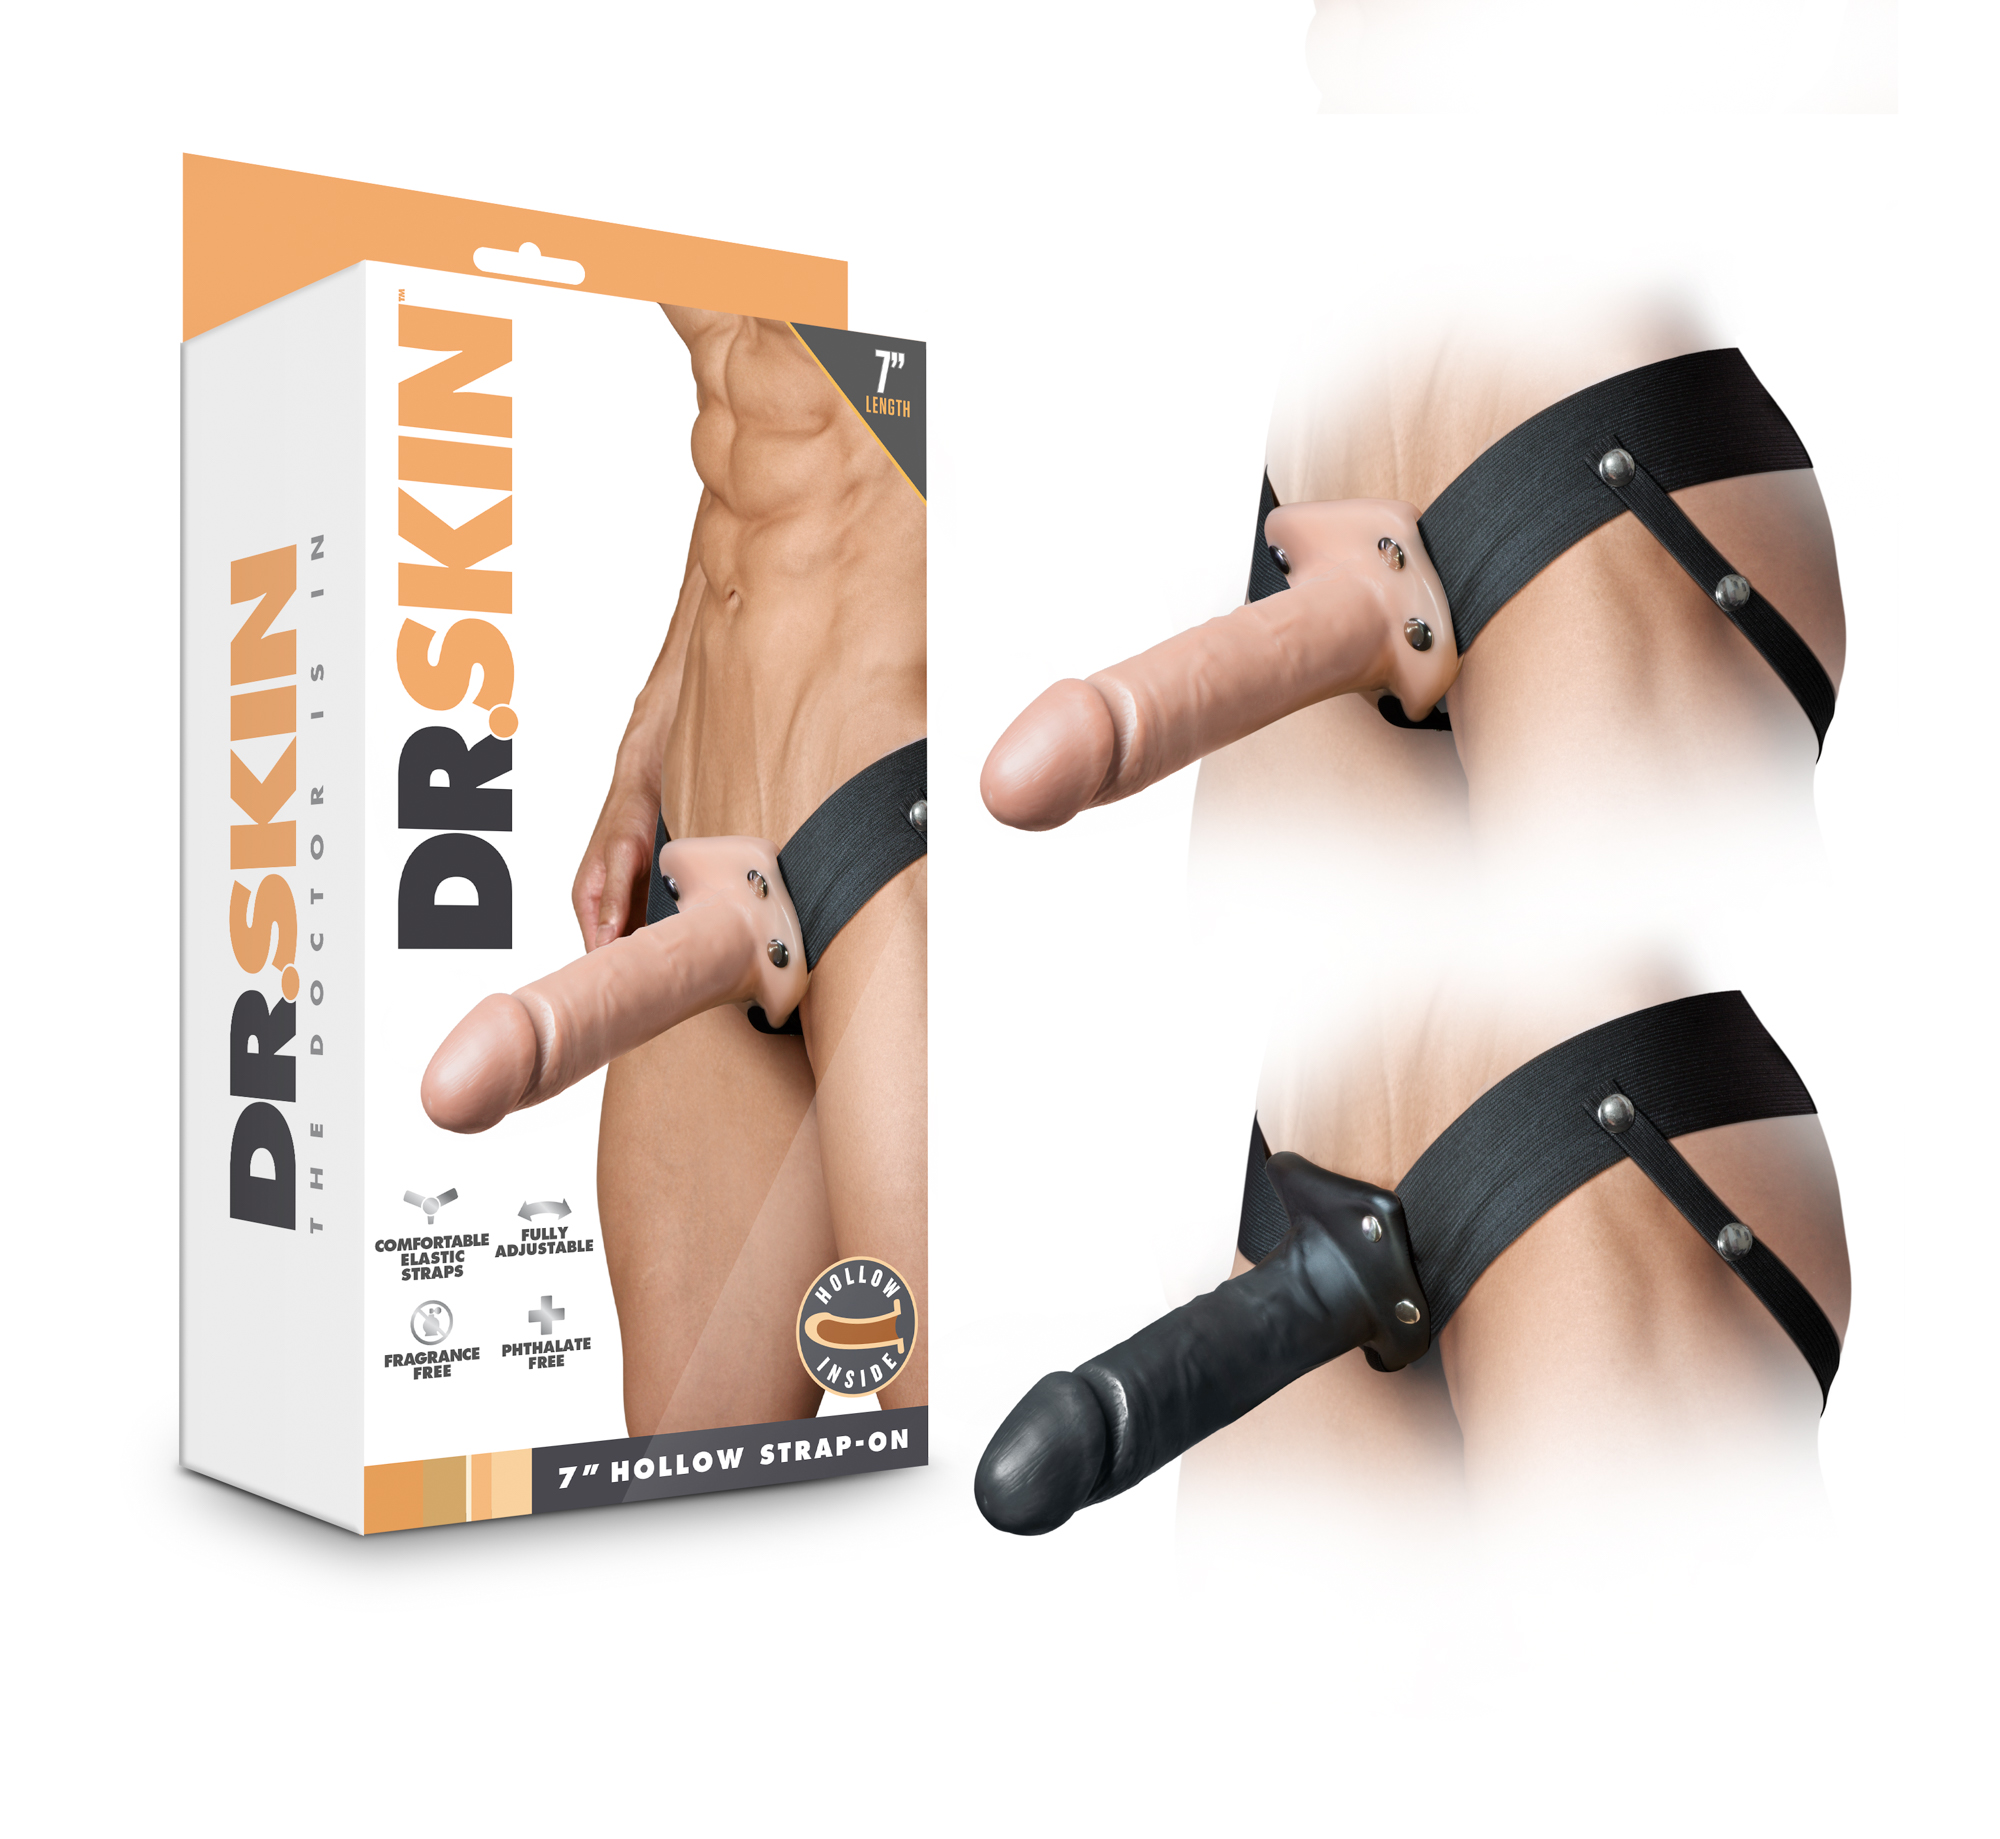 Dr. Skin - 7 Inch Hollow Strap On - Vanilla